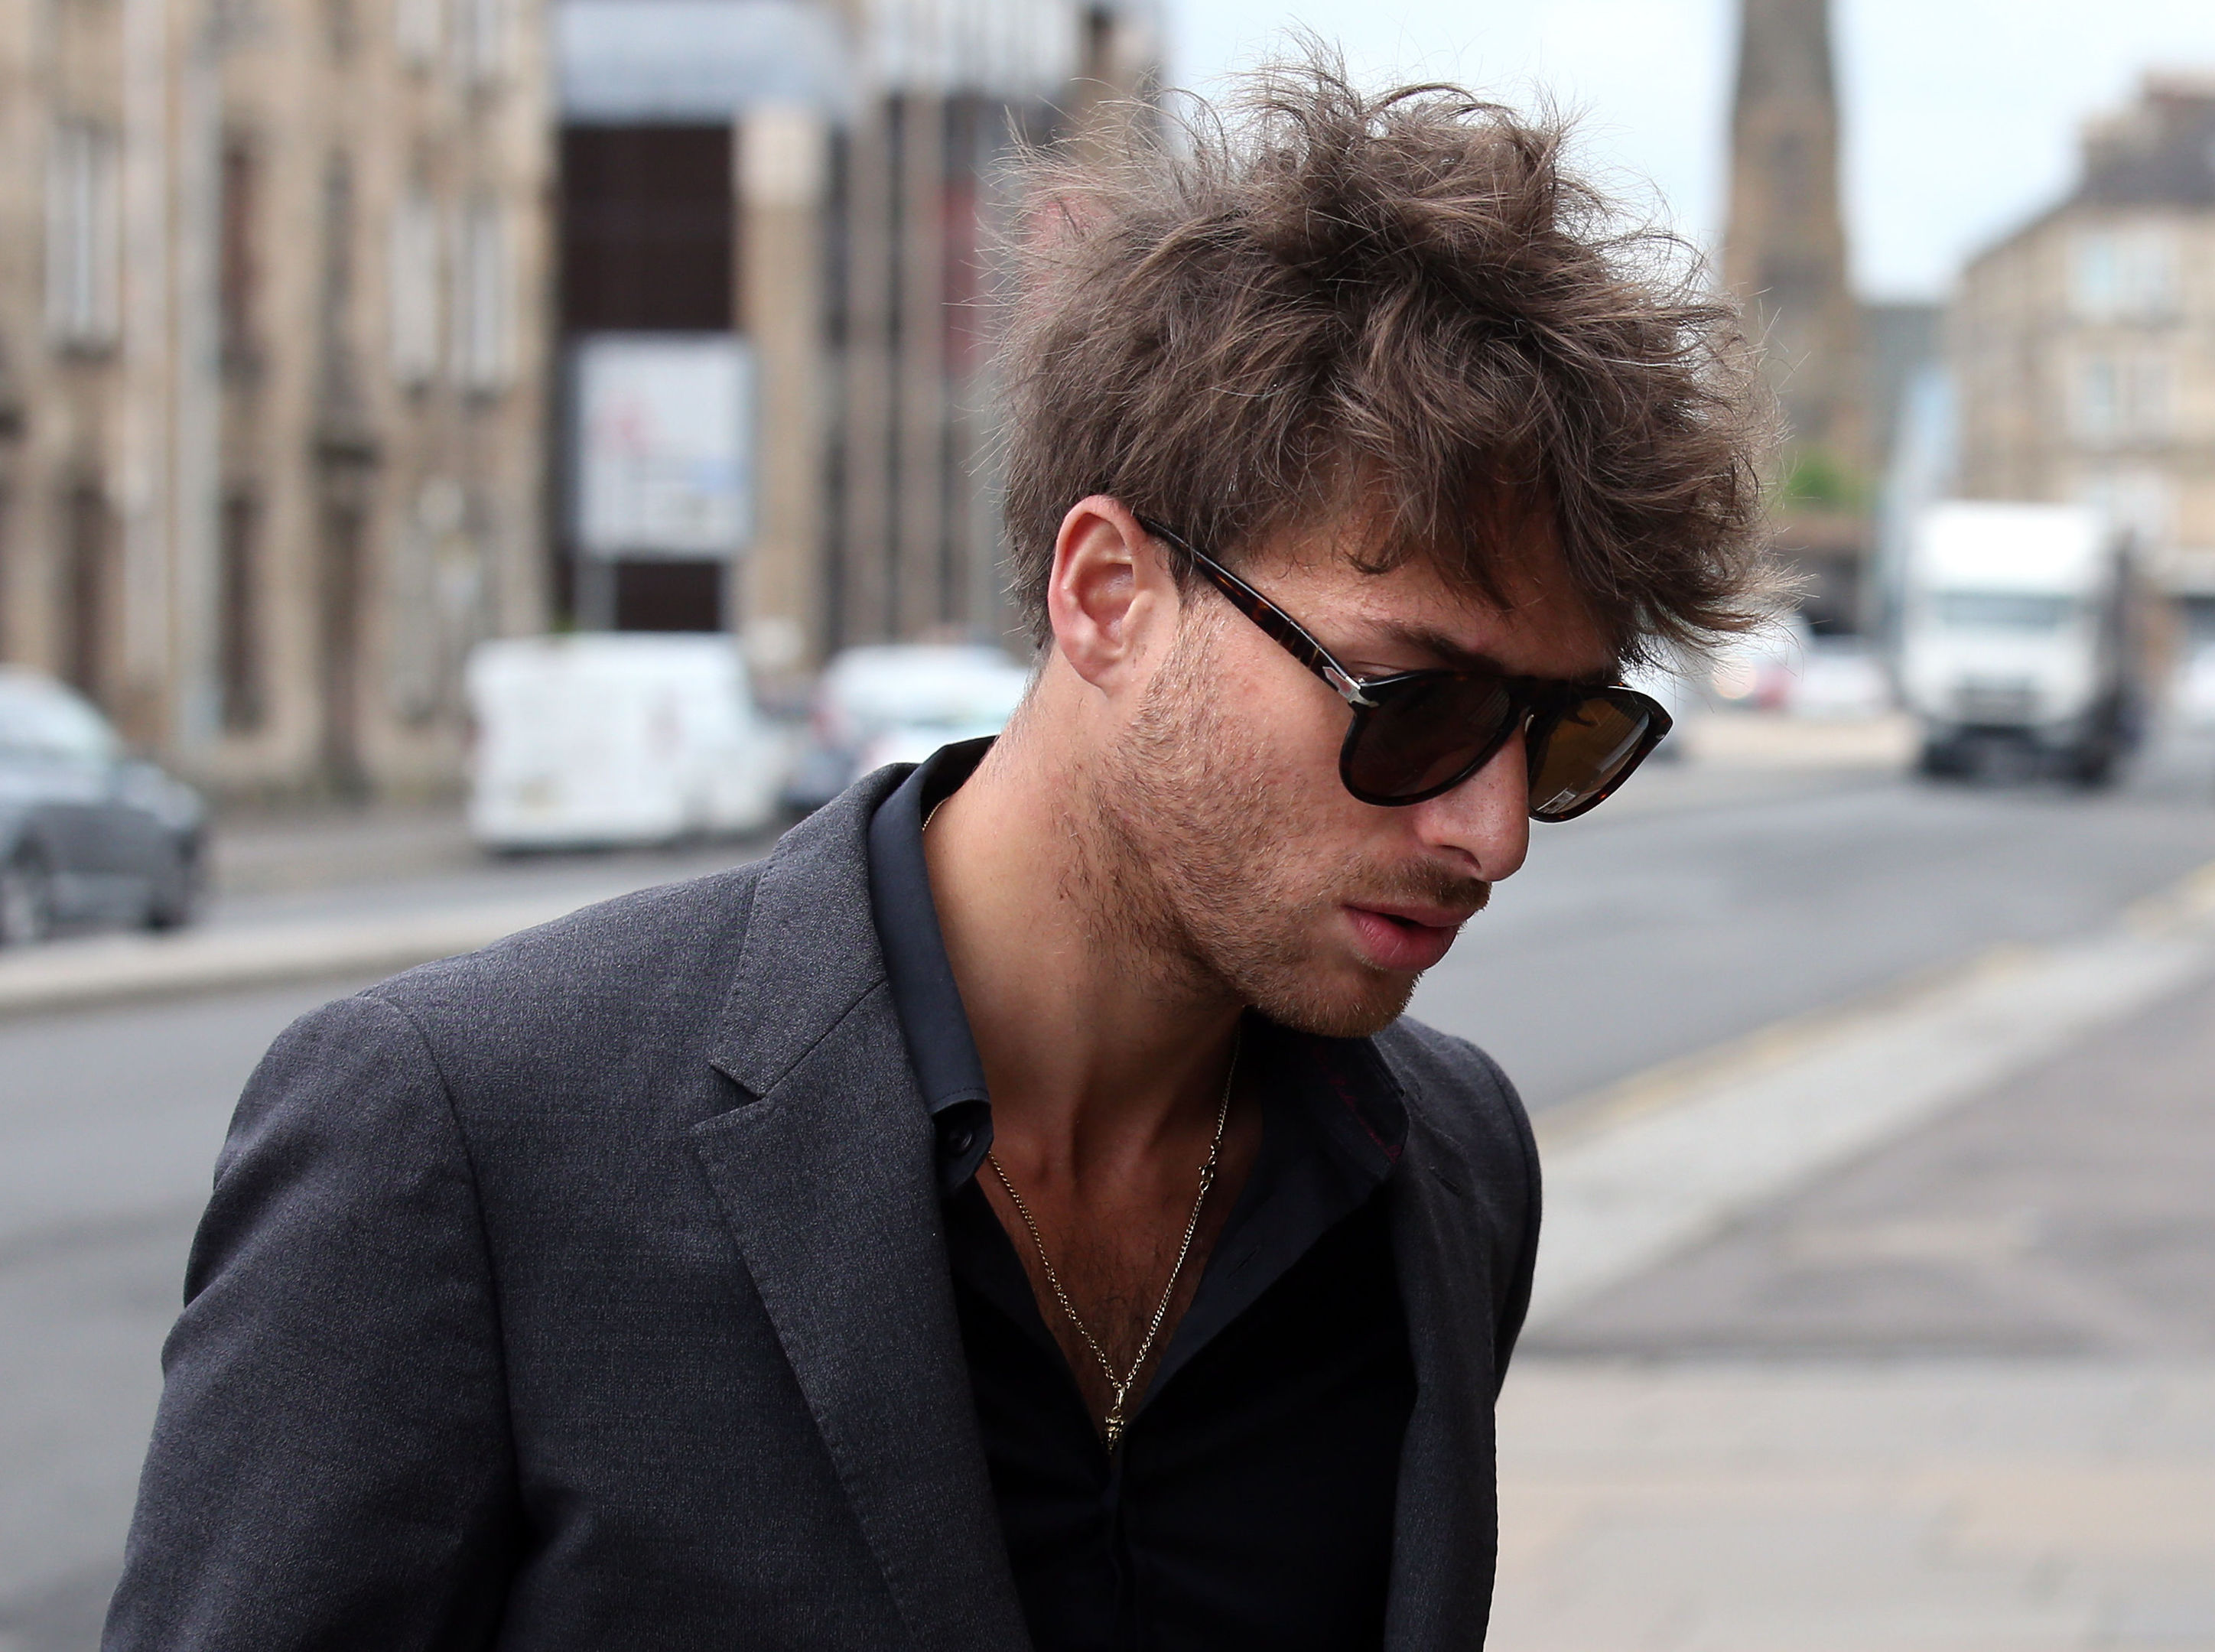 Singer Paolo Nutini arrives at Paisley Sheriff Court (Andrew Milligan/PA Wire)